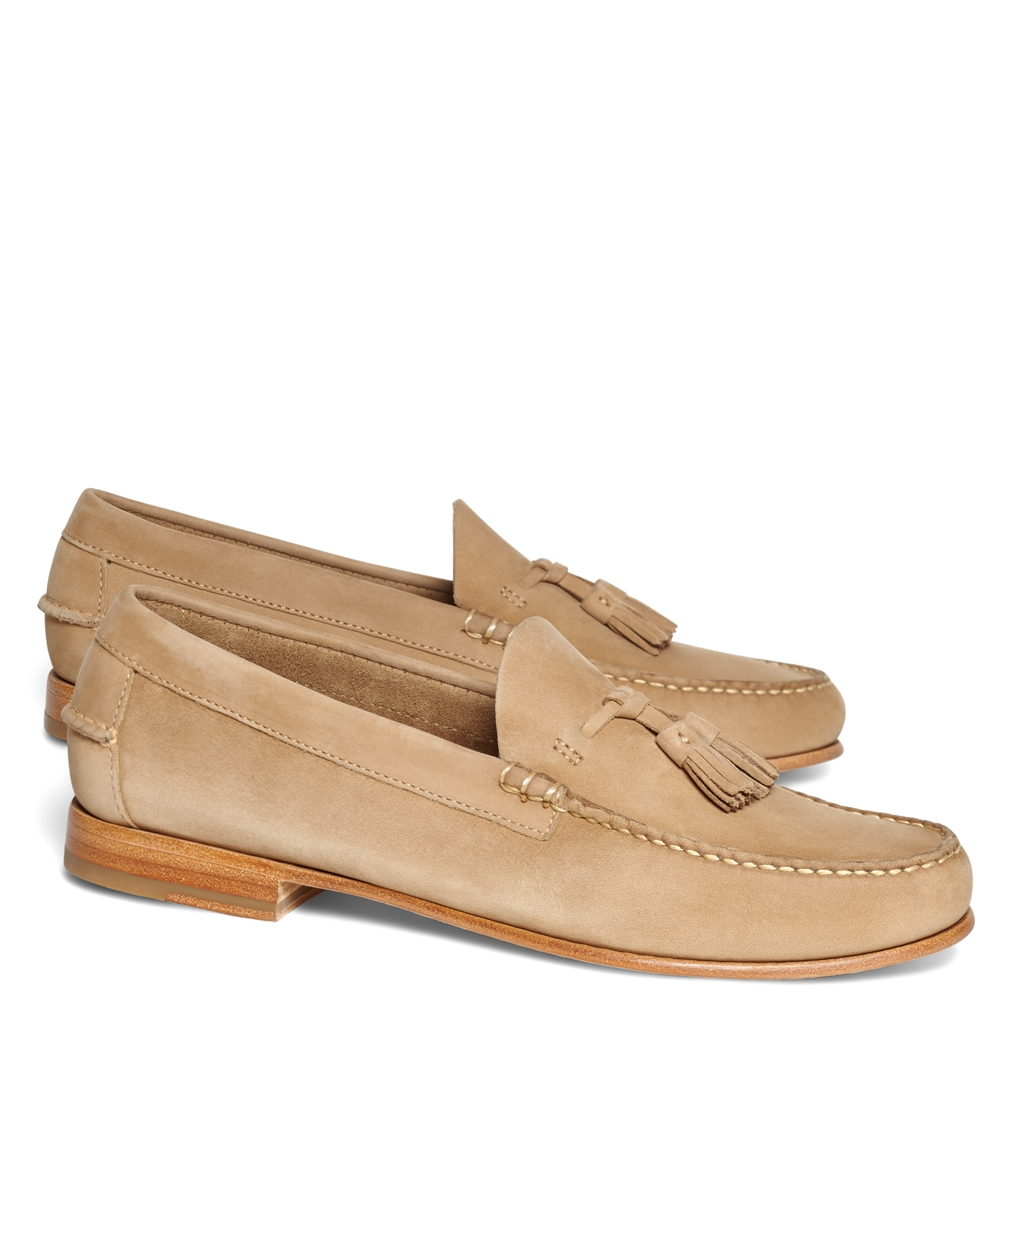 c4fa9d06159 Lyst - Brooks Brothers Nubuck Tassel Loafers in Natural for Men